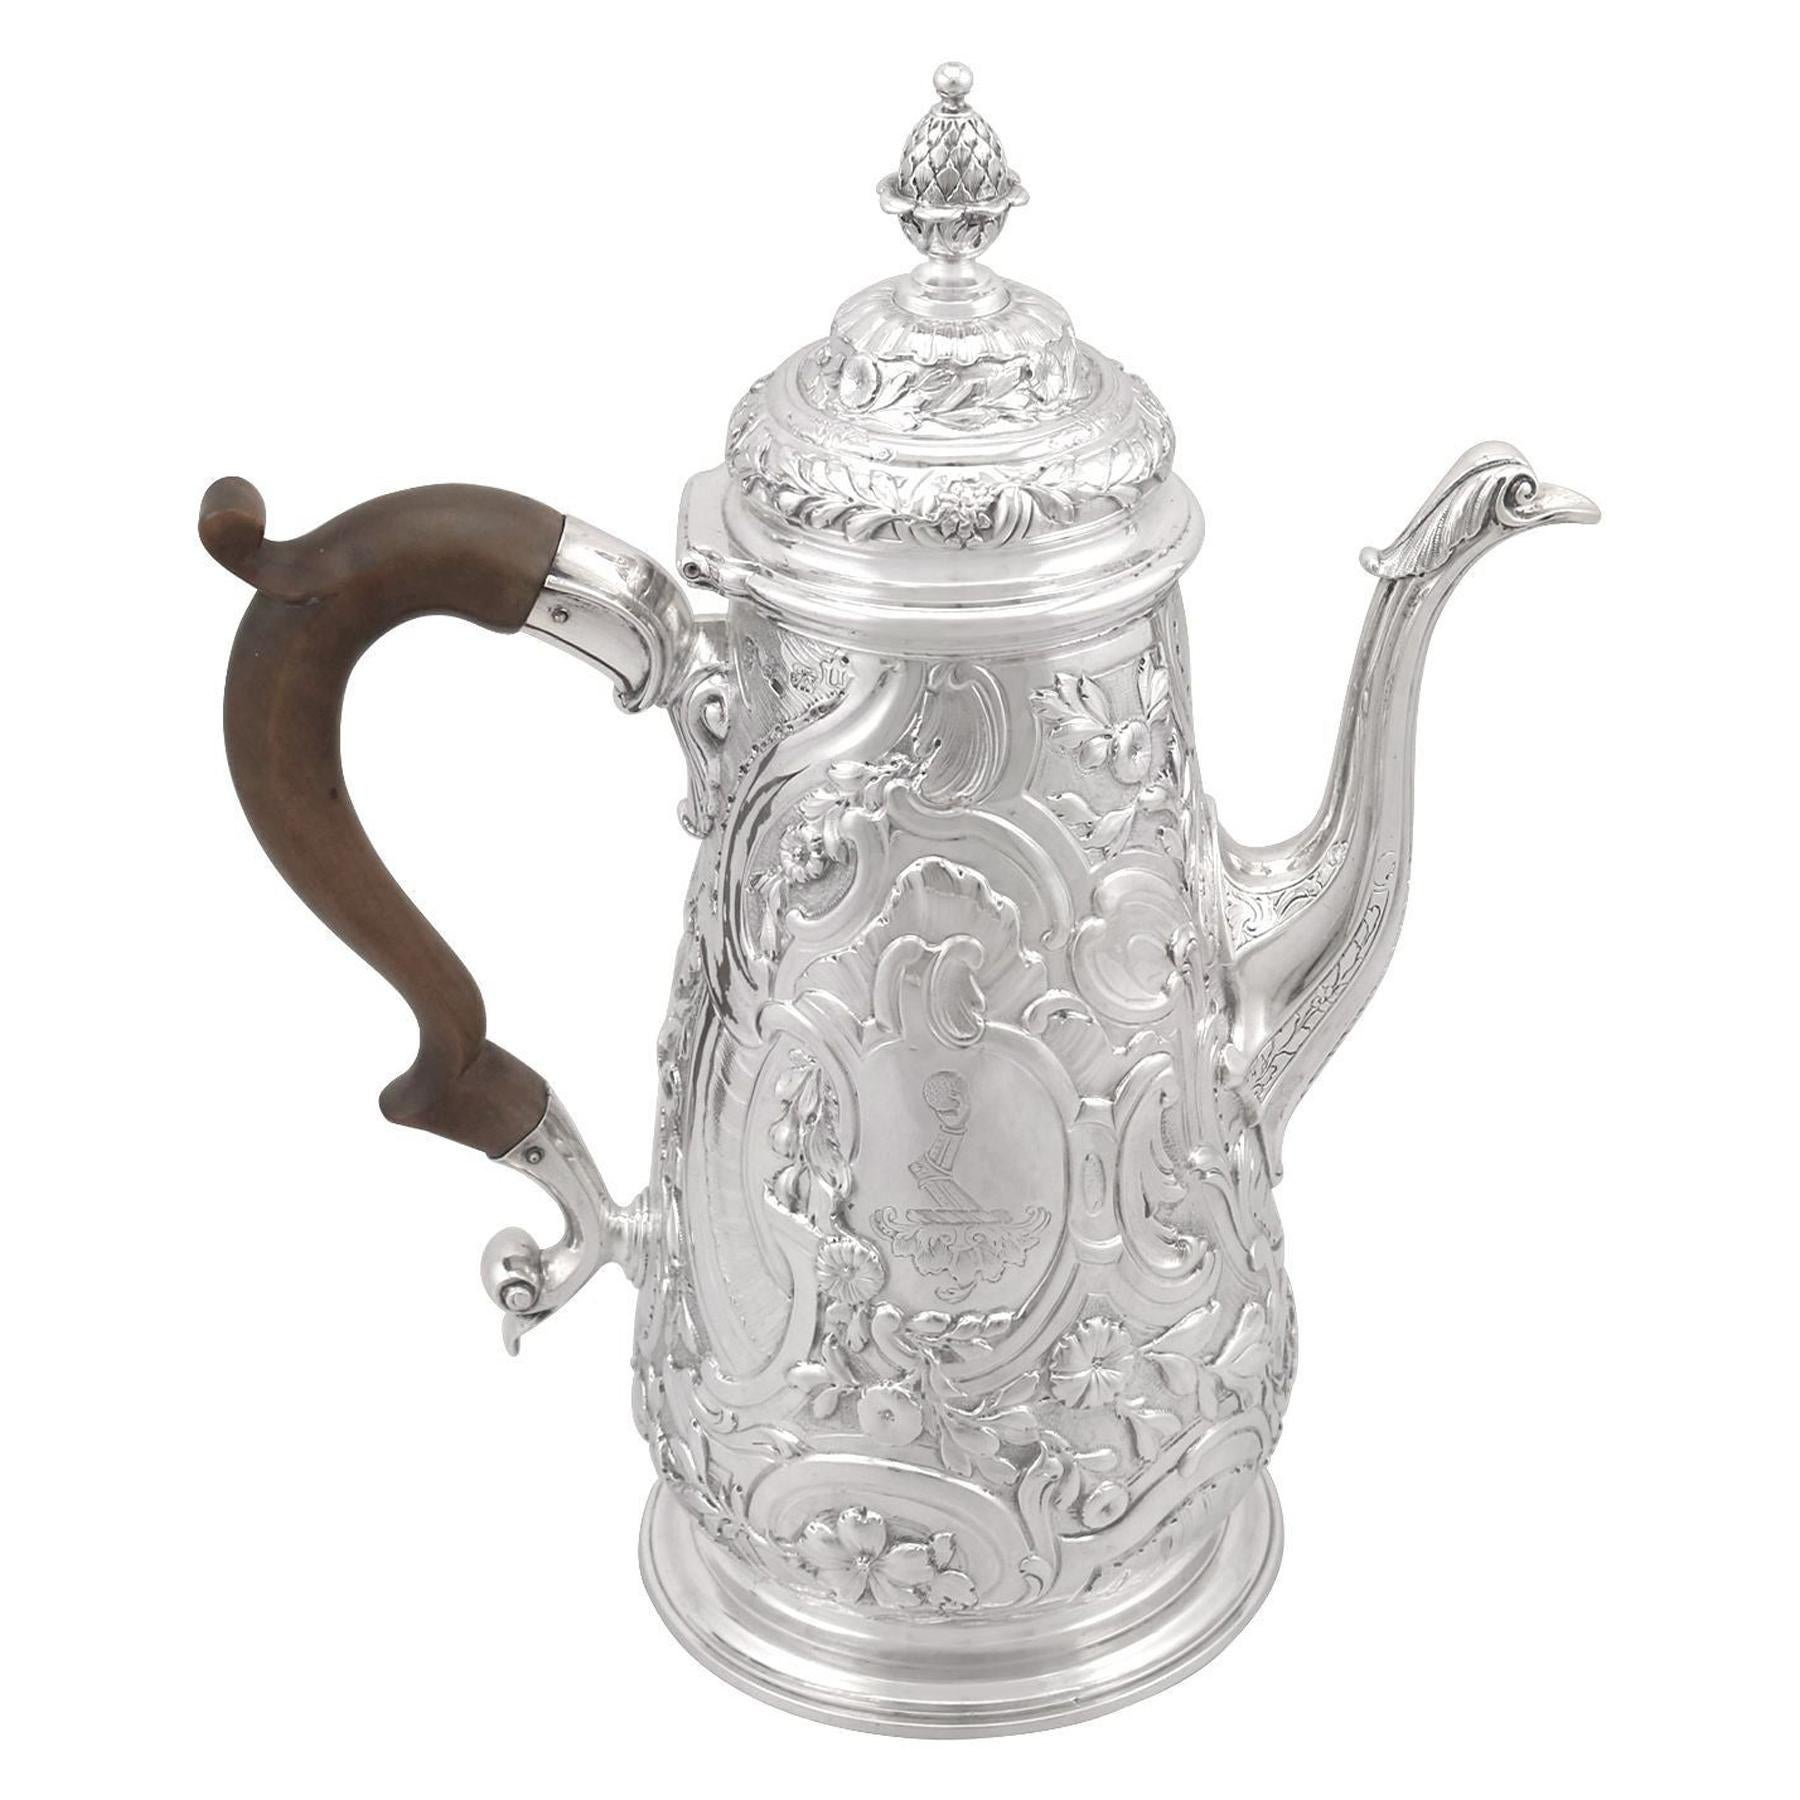 Antique George II Sterling Silver Coffee Pot - 1748